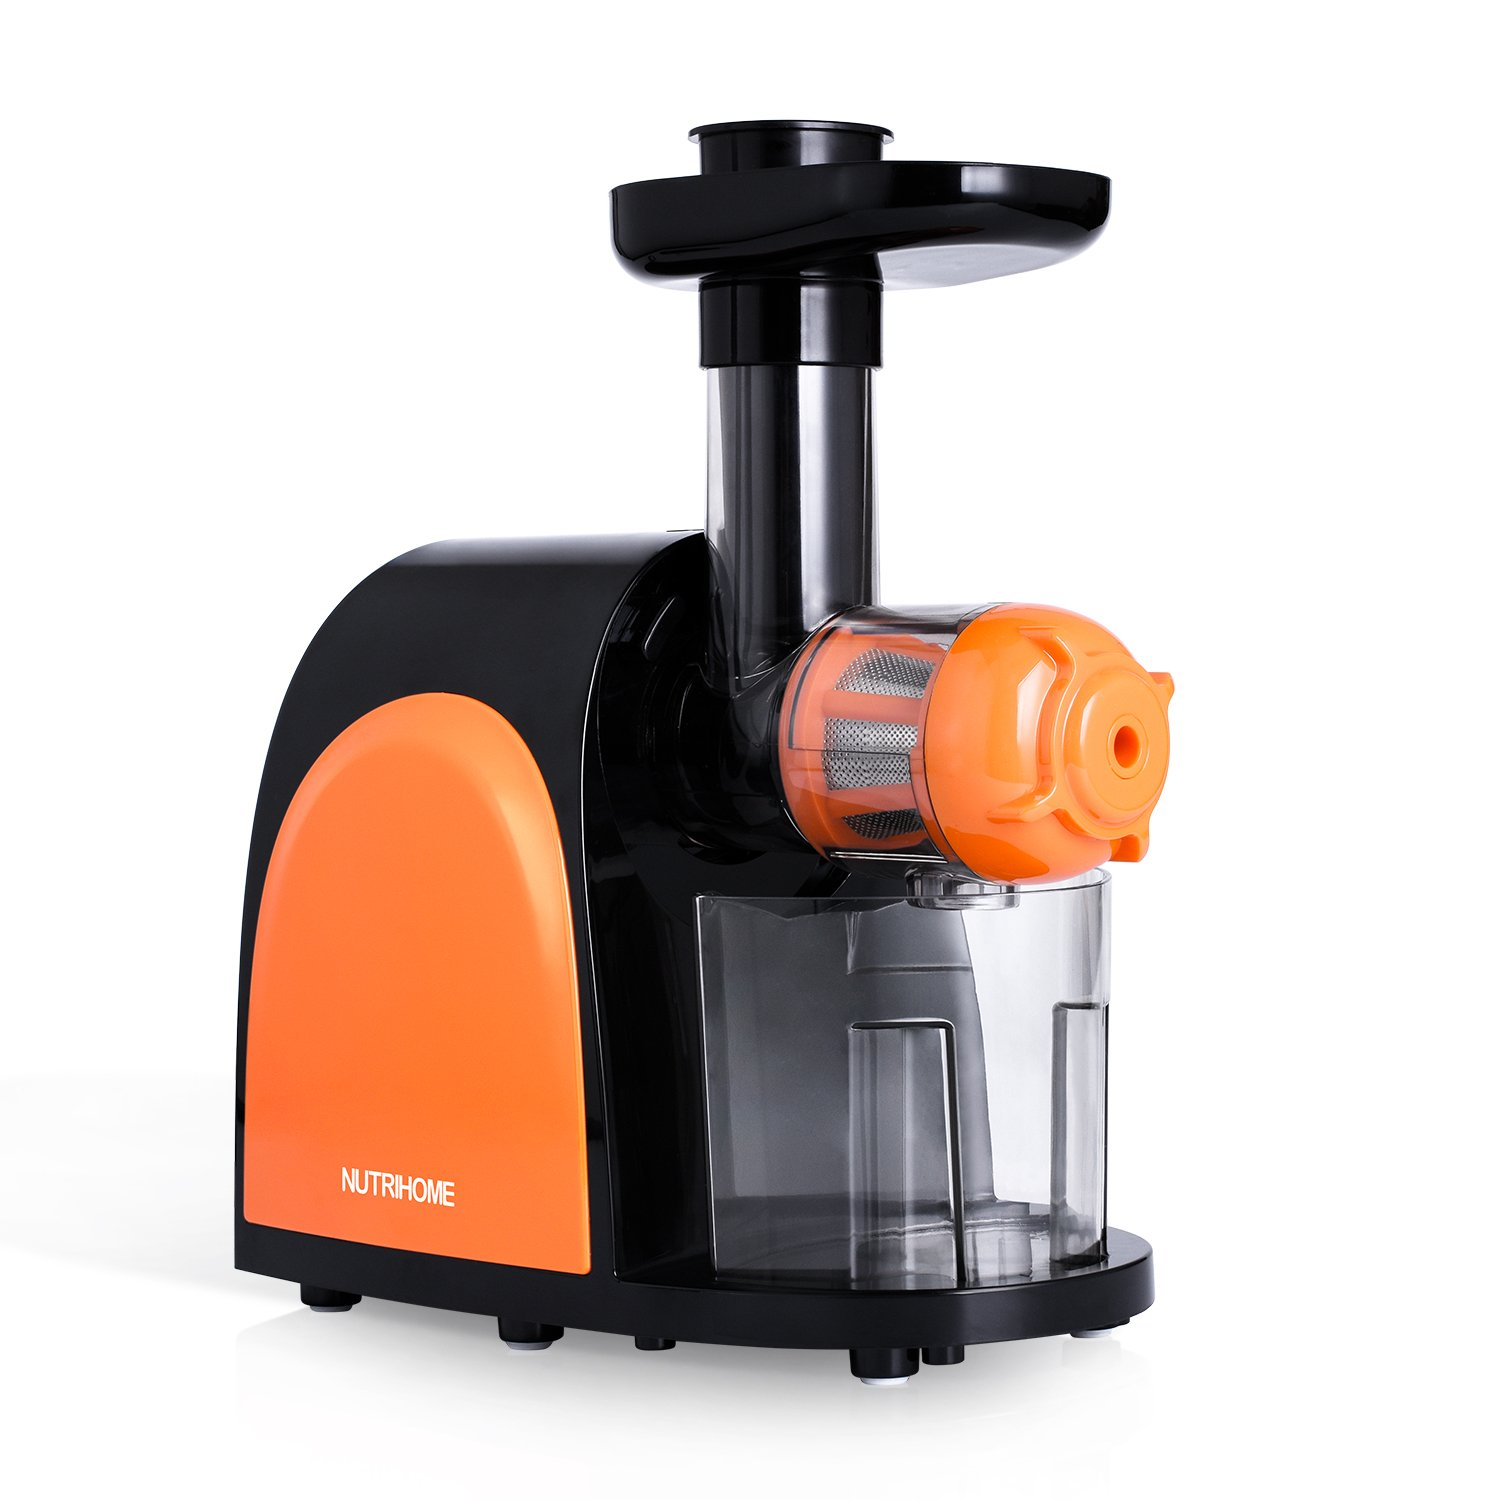 Slow Juicer Test 2018 : Best Masticating Juicer 2018, Reviews and Buying Guide